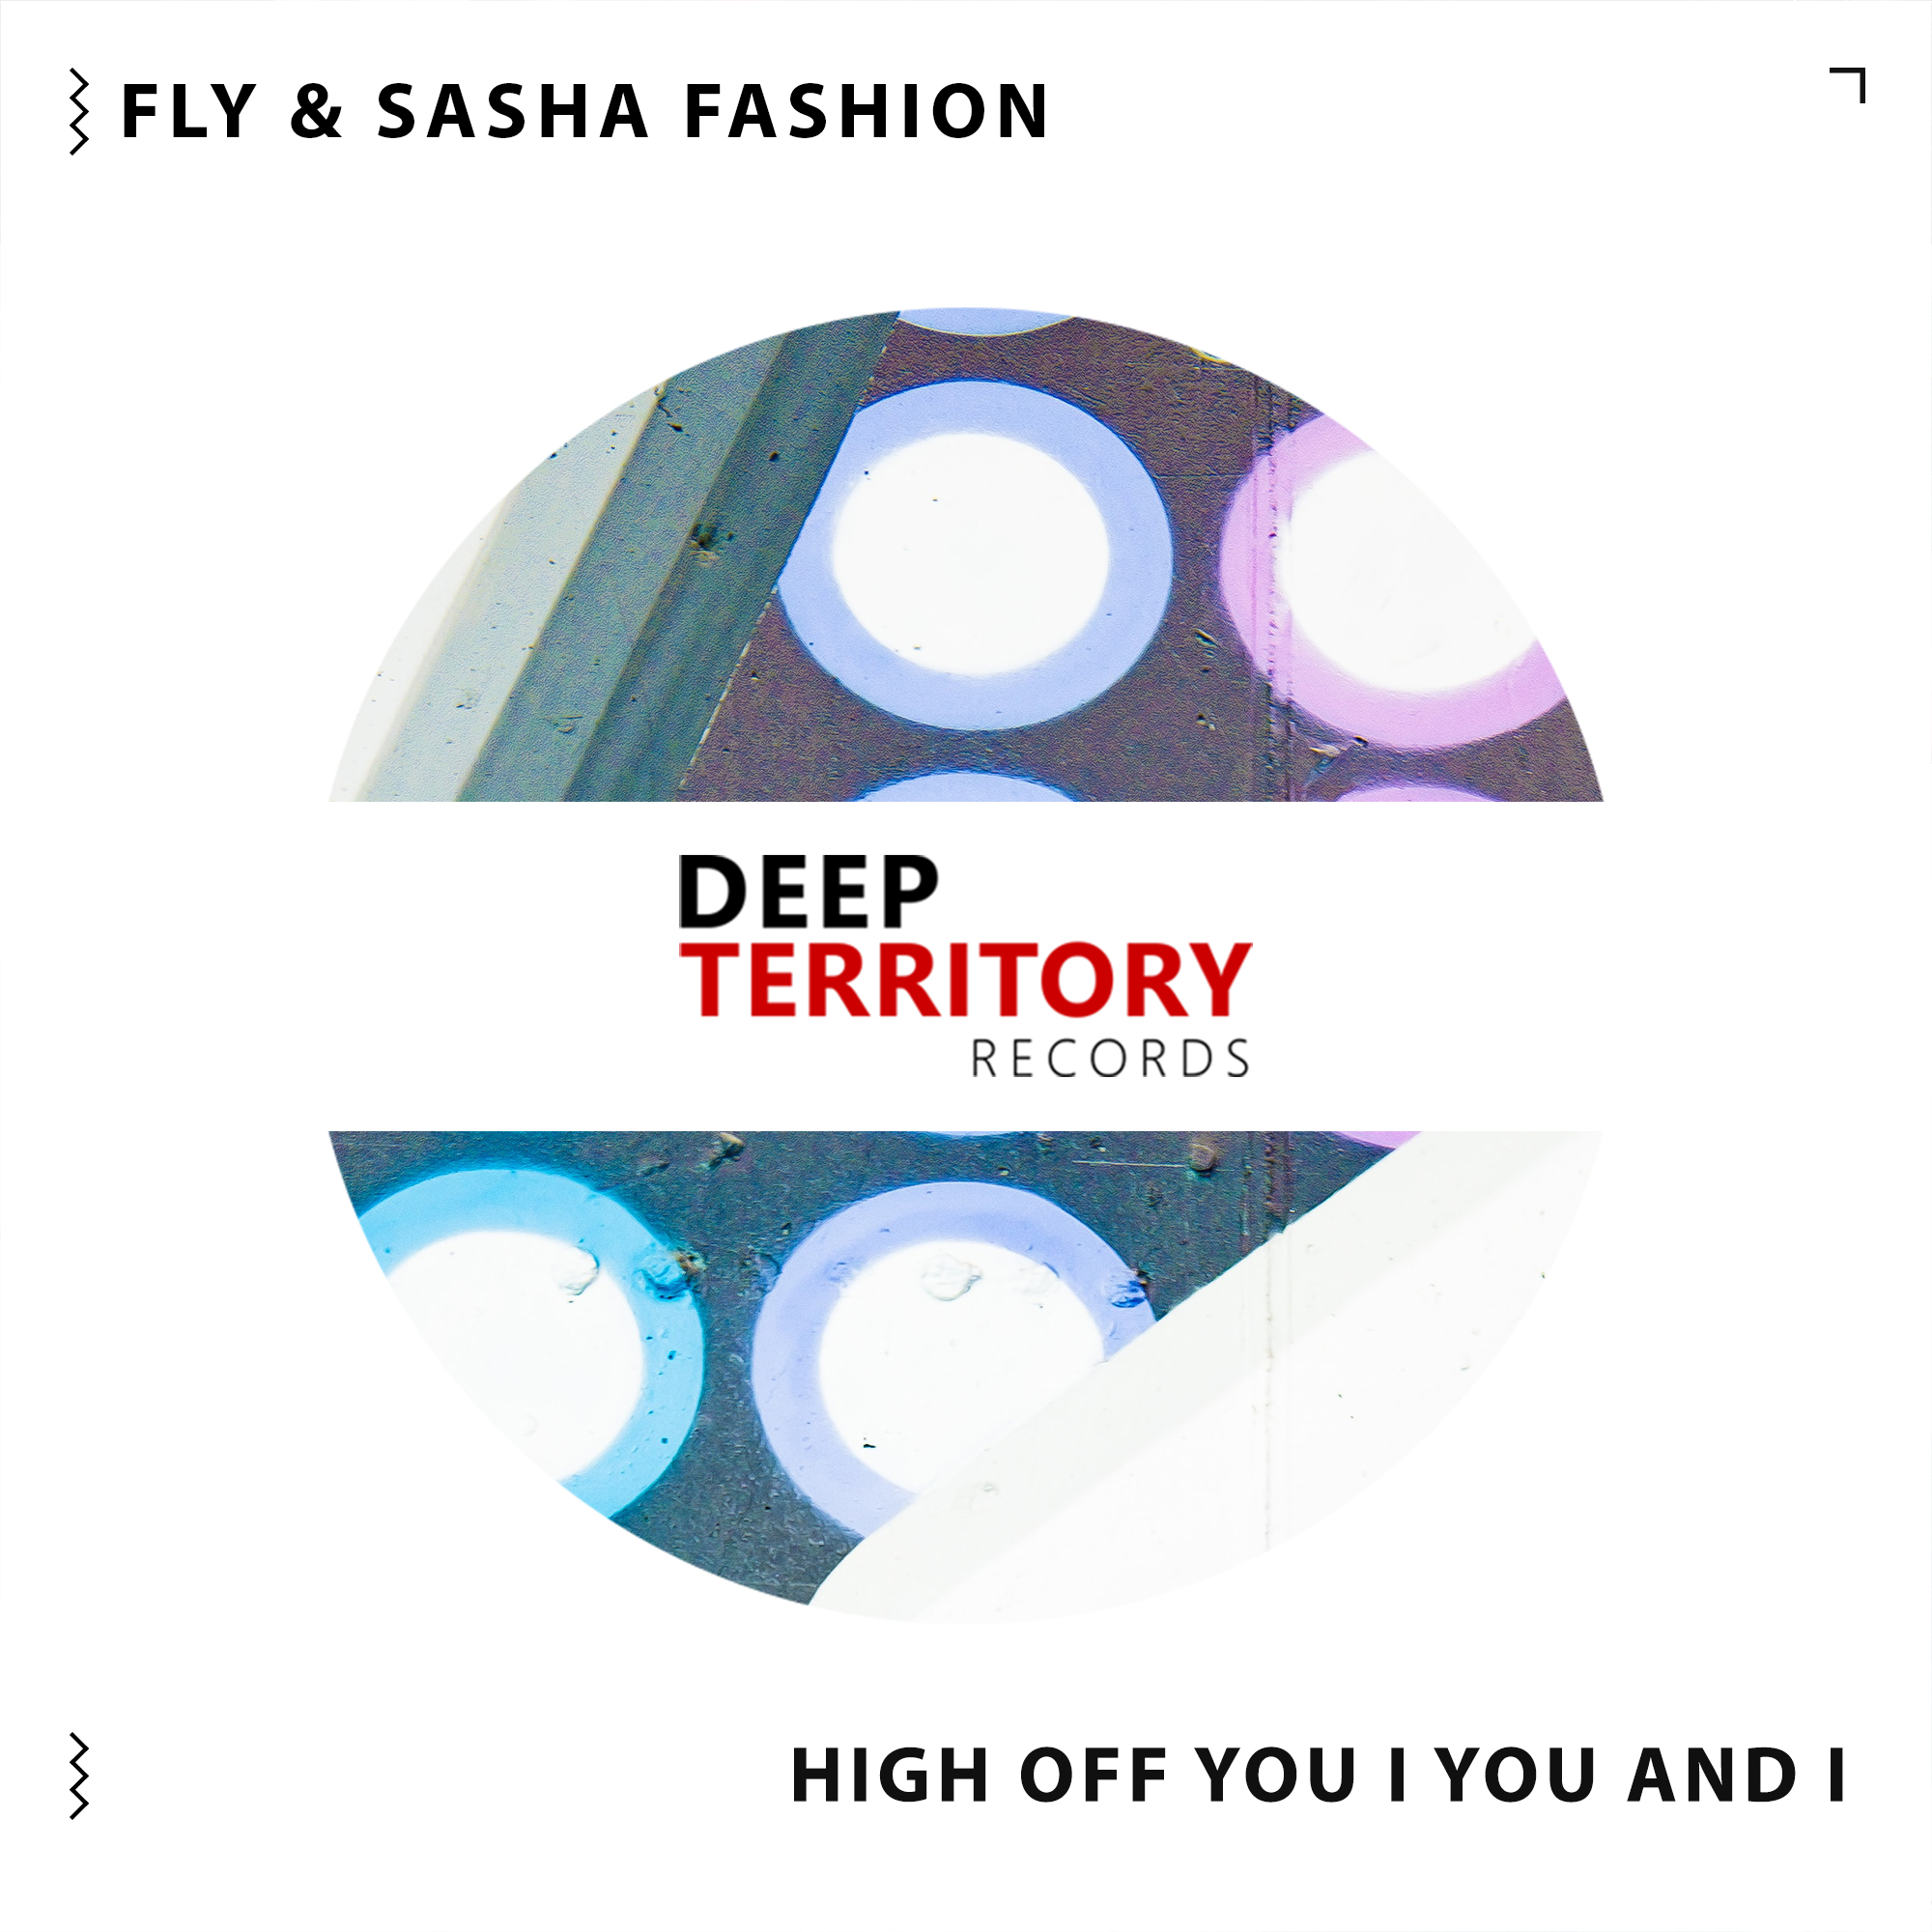 highoffyoucover